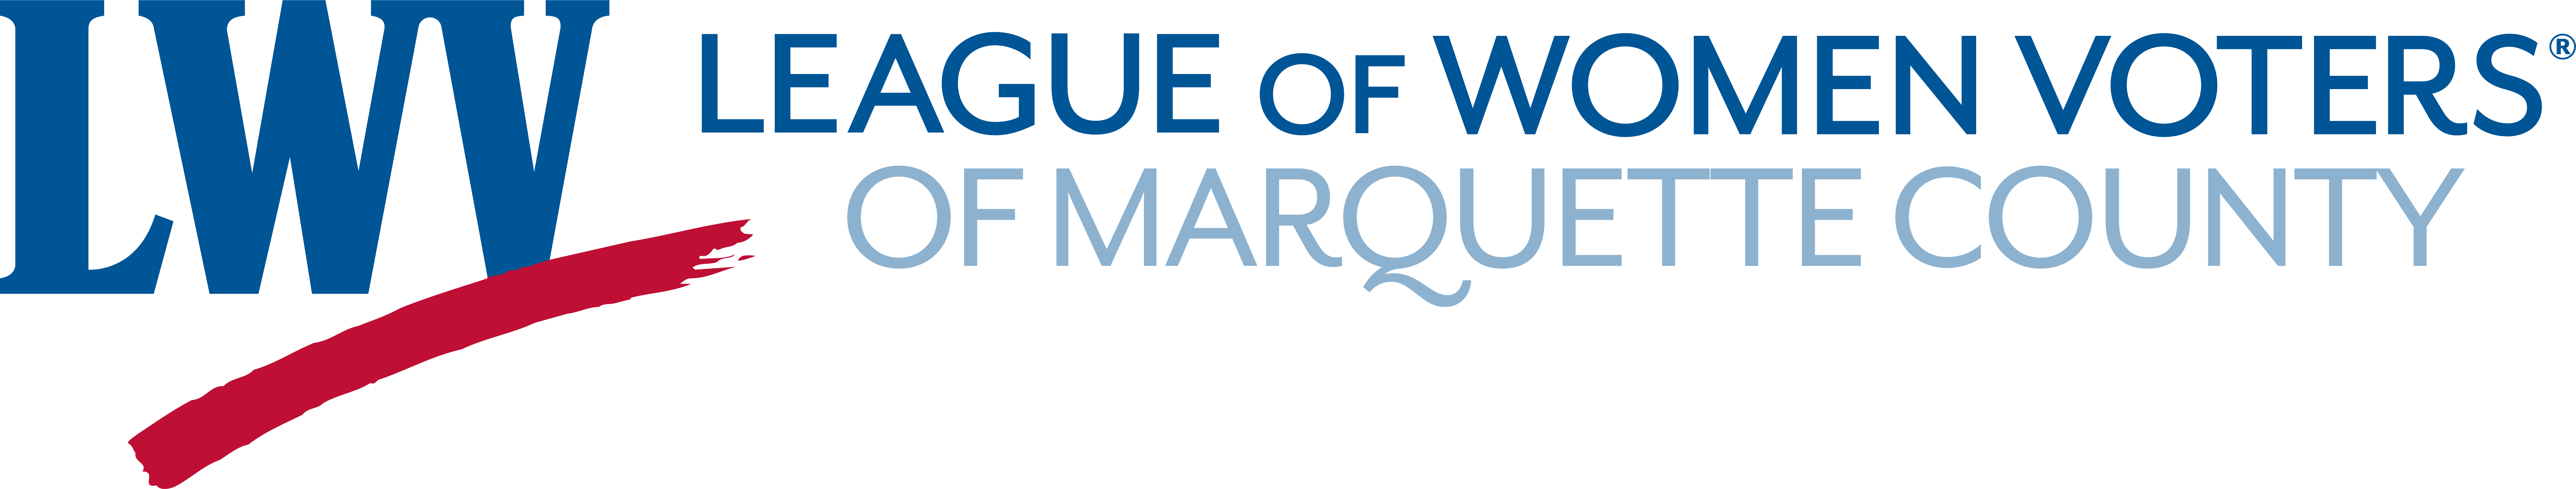 Logo for League of Women Voters of Marquette County